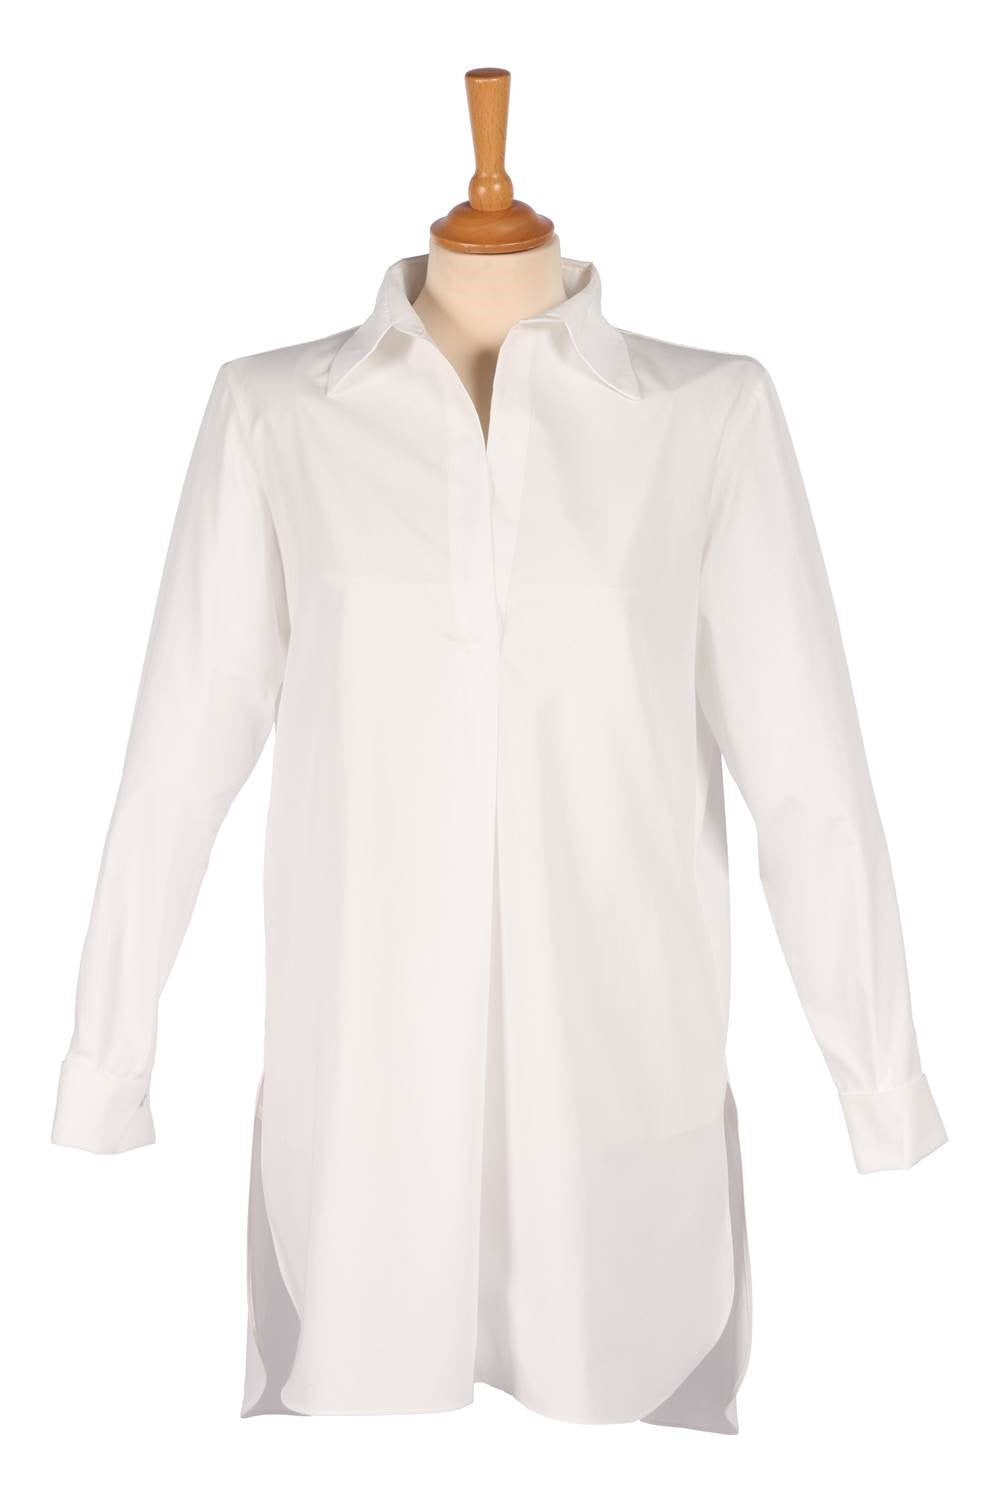 Long Shirt White - Jenny M. London  - 1